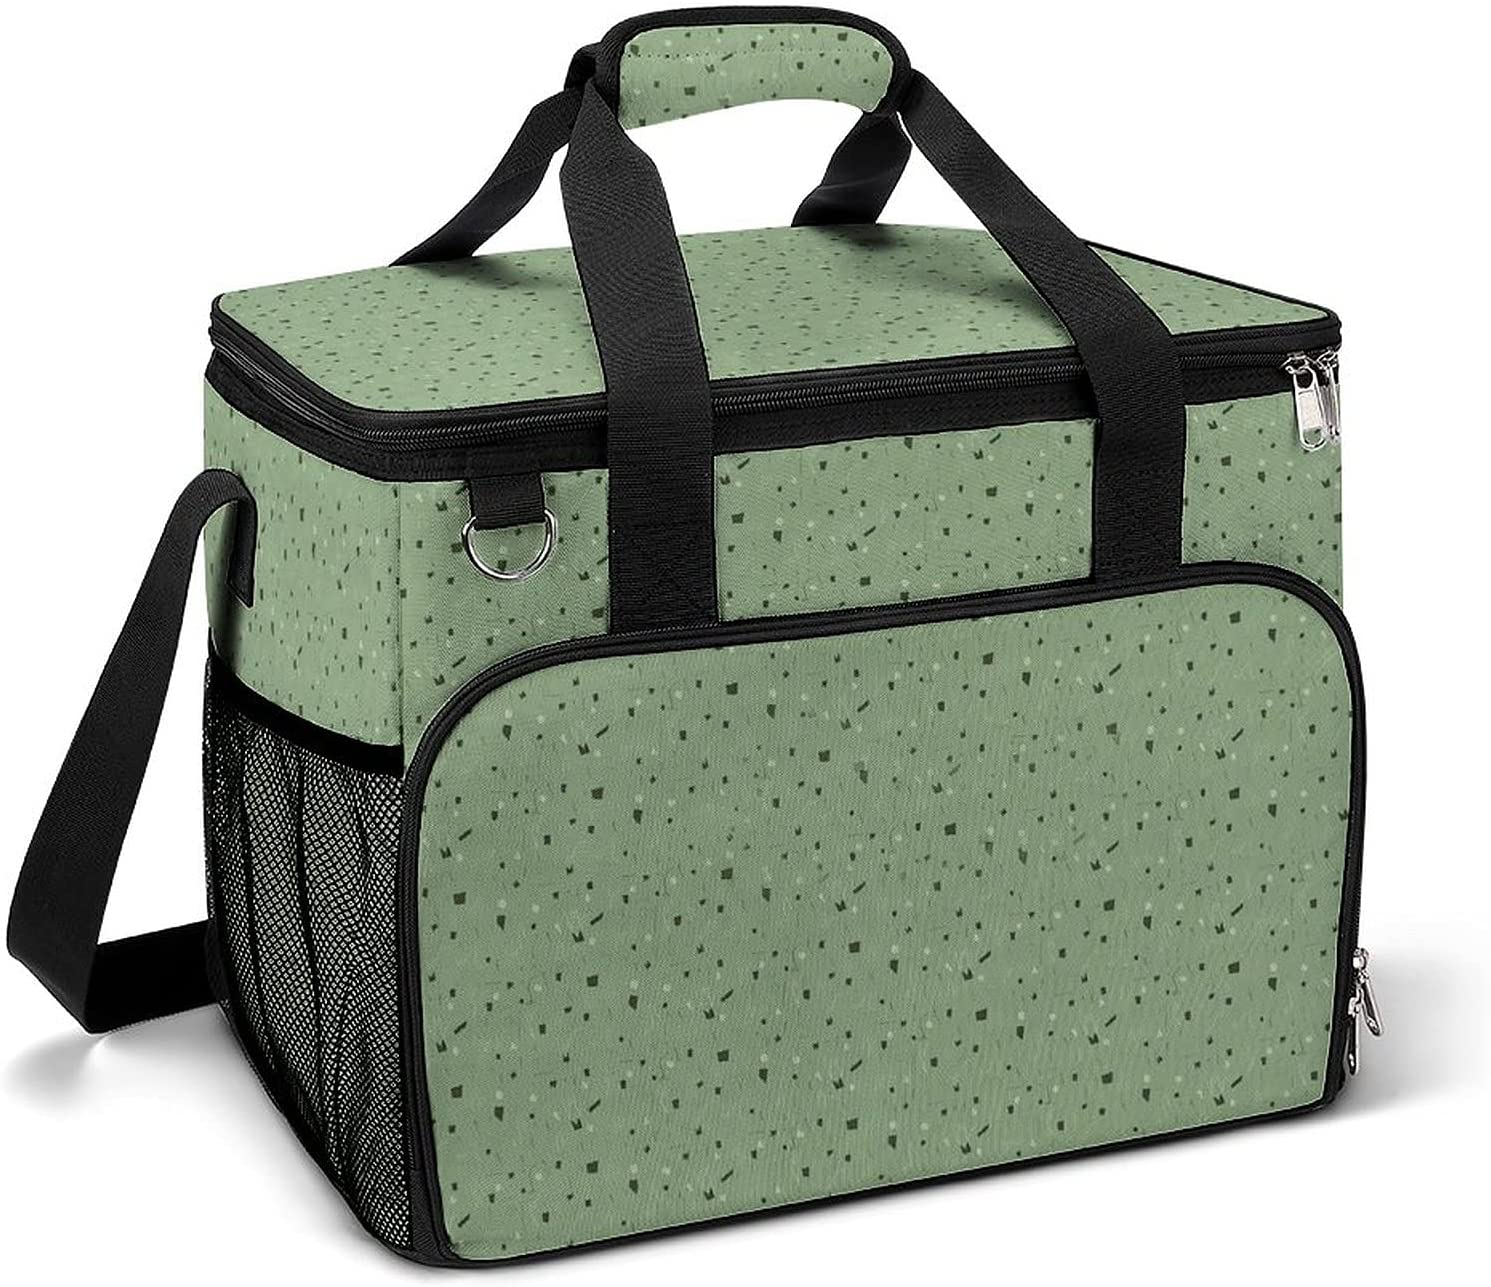 Large Overseas parallel import regular item Oxford cloth leak-proof soft-sided portable bags Ranking TOP6 cooling